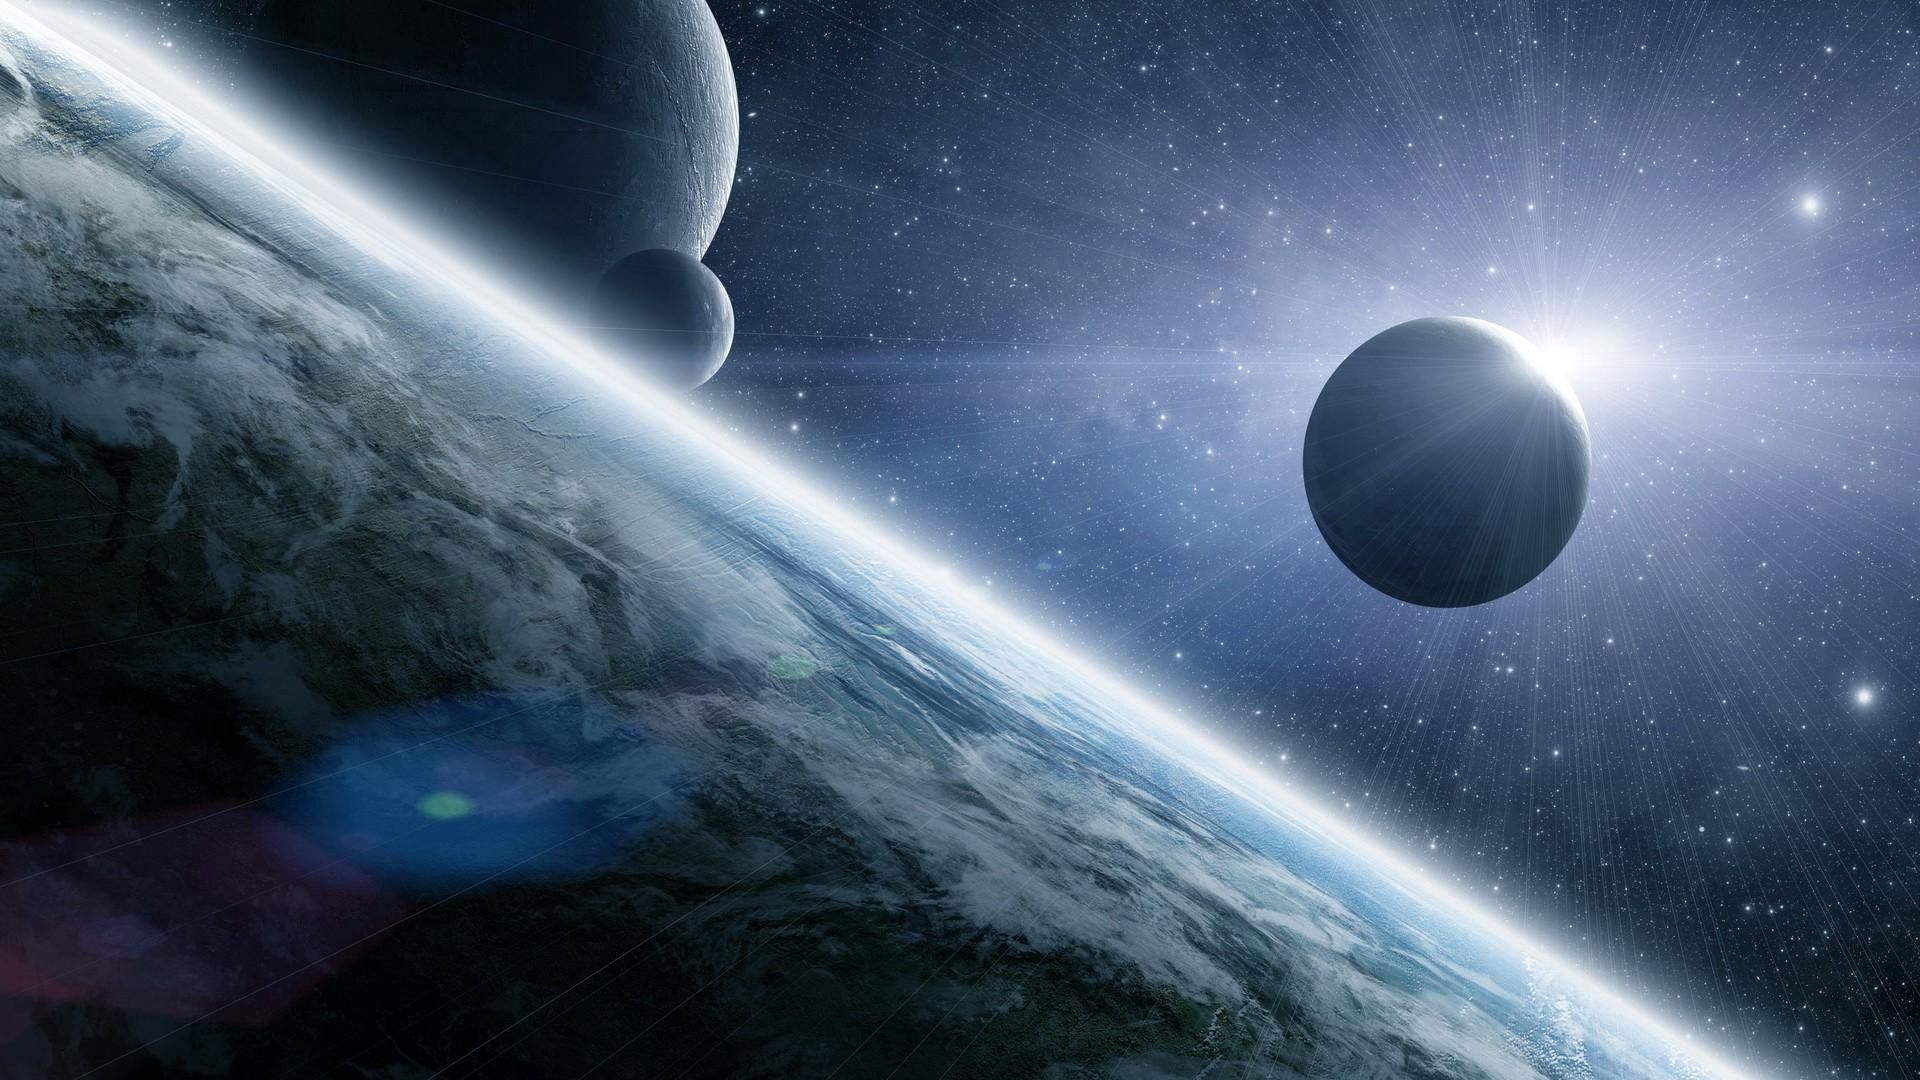 Outer Space download free wallpaper image search